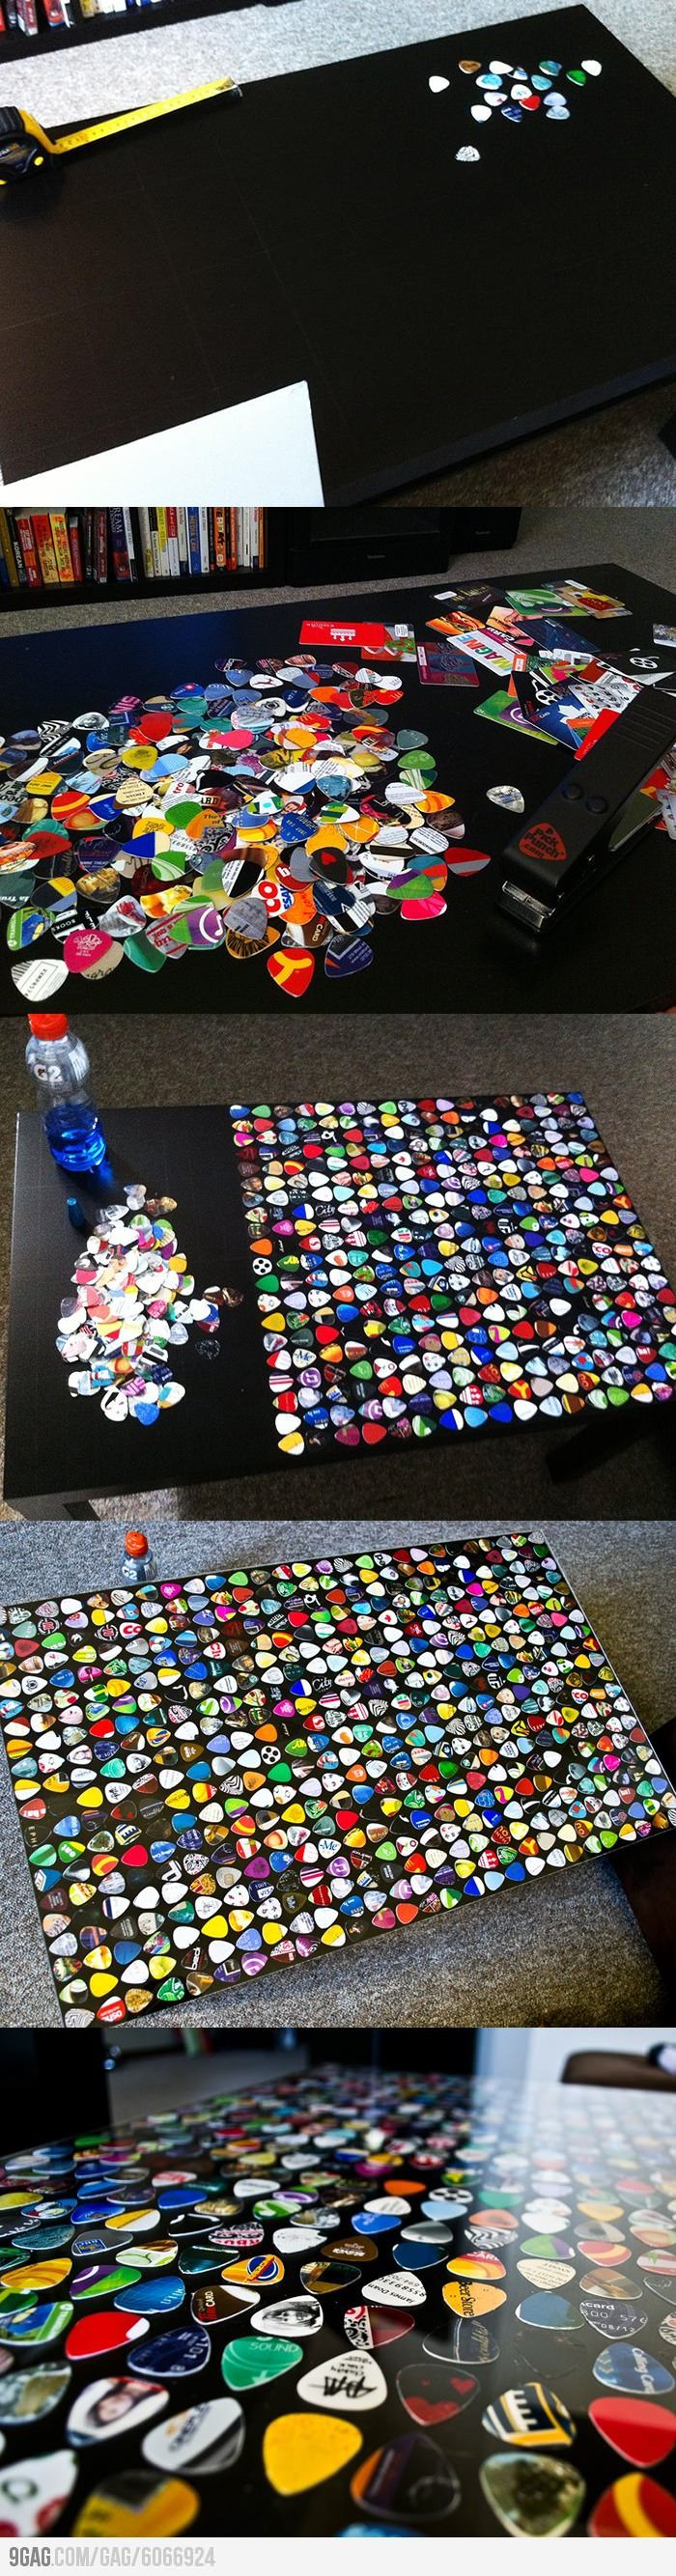 DIY- What to do with that old Ikea Coffee Table!!! Make it an Awesome guitar pick table! ohh ya!!... make ur own picks too! so you can save a few bucks!